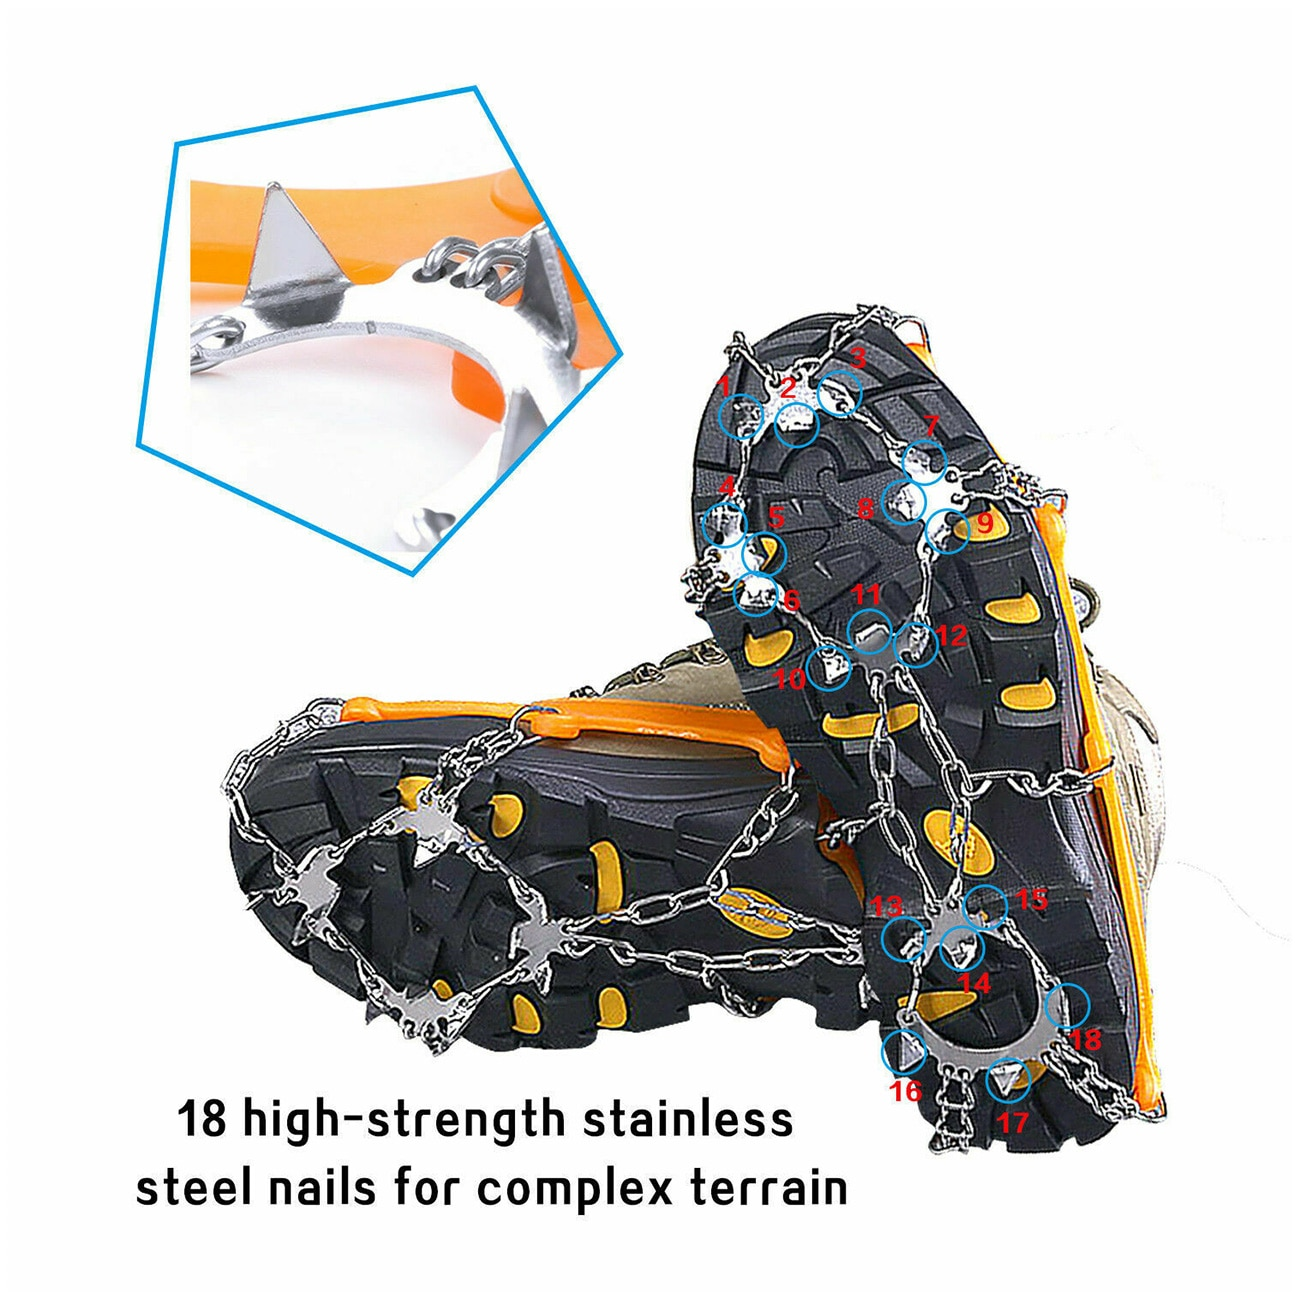 18 Teeth Ice Snow Crampons Anti-Slip Climbing Gripper Shoe Covers Spike Cleats Climbing Hiking Women Men Boots Shoe Covers